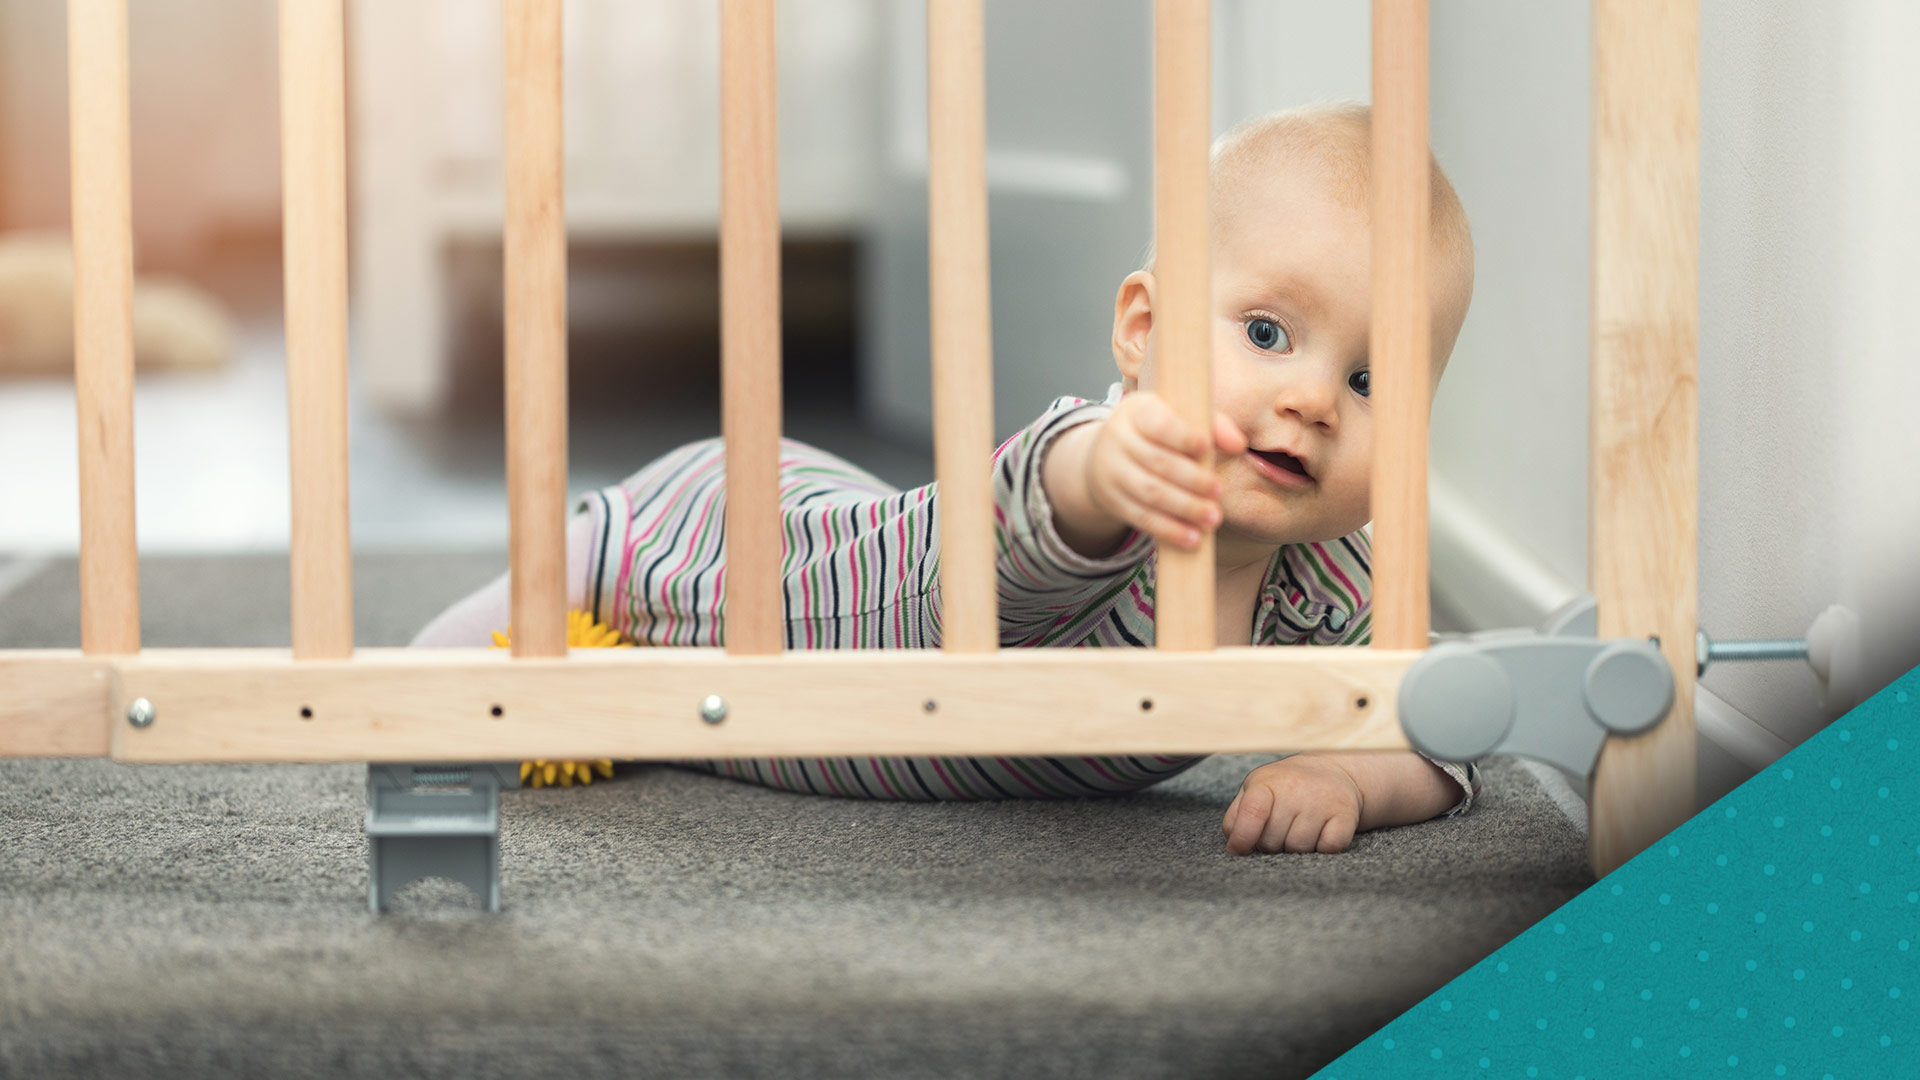 You'll do anything to keep your baby out of harm's way. See how you can keep your baby safe at home, on the road and beyond.